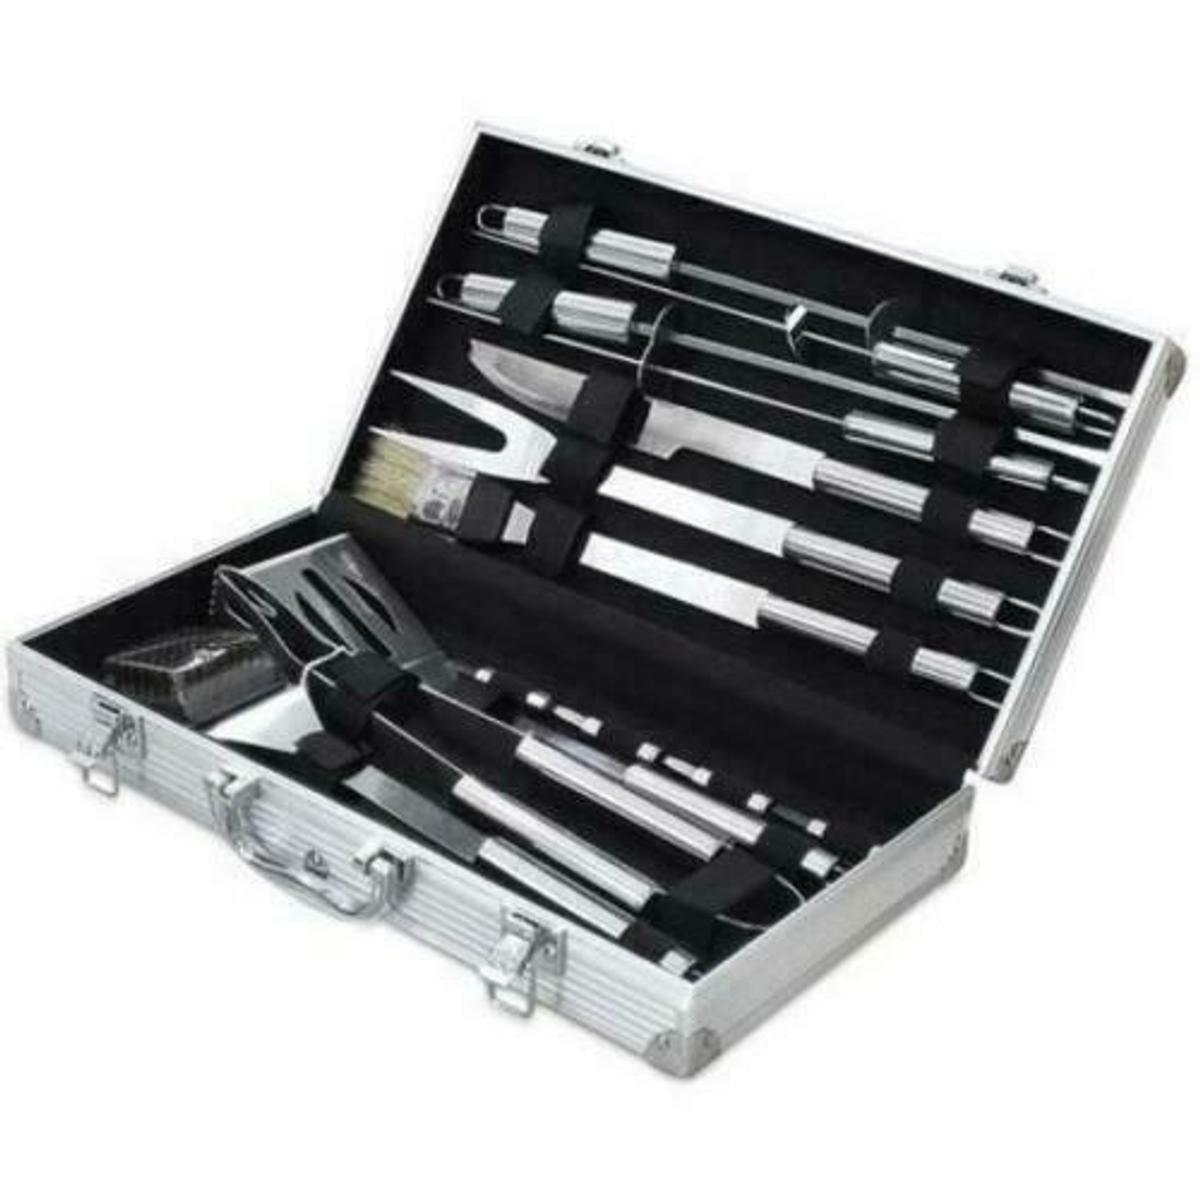 A great Barbecue Set for real barbecue enthusiasts! This comprehensive 18 piece BBQ Set comes in a handy easy to carry aluminium case. . It can be used at home, at the beach, or when camping. Ideal when cooking those tasty steaks, delicious sausages, or an assortment of vegetables.  18PC Package Includes:  1 x Tongs 1 x Meat Knife 1 x Meat Fork 1 x Grill Cutter / Slicer 1 x Basting Brush 1 x Cleaning Brush 4 x Skewers 8 x Corn Skewers  Item sent via Royal Mail first class signed for